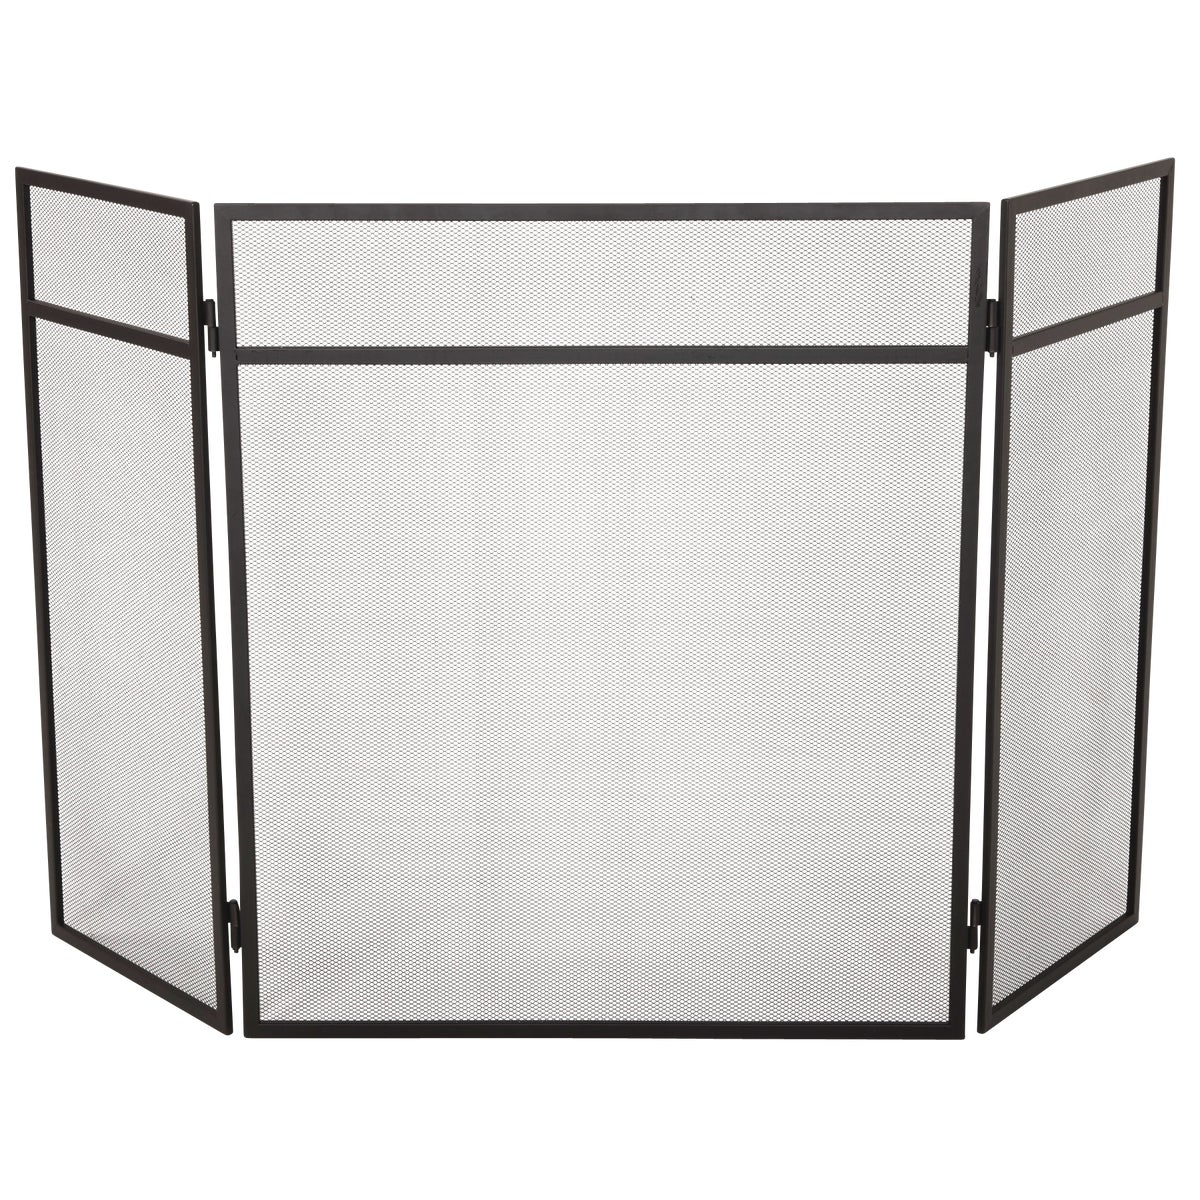 50X30 3-PANEL BLK SCREEN - 428353 by Do it Best